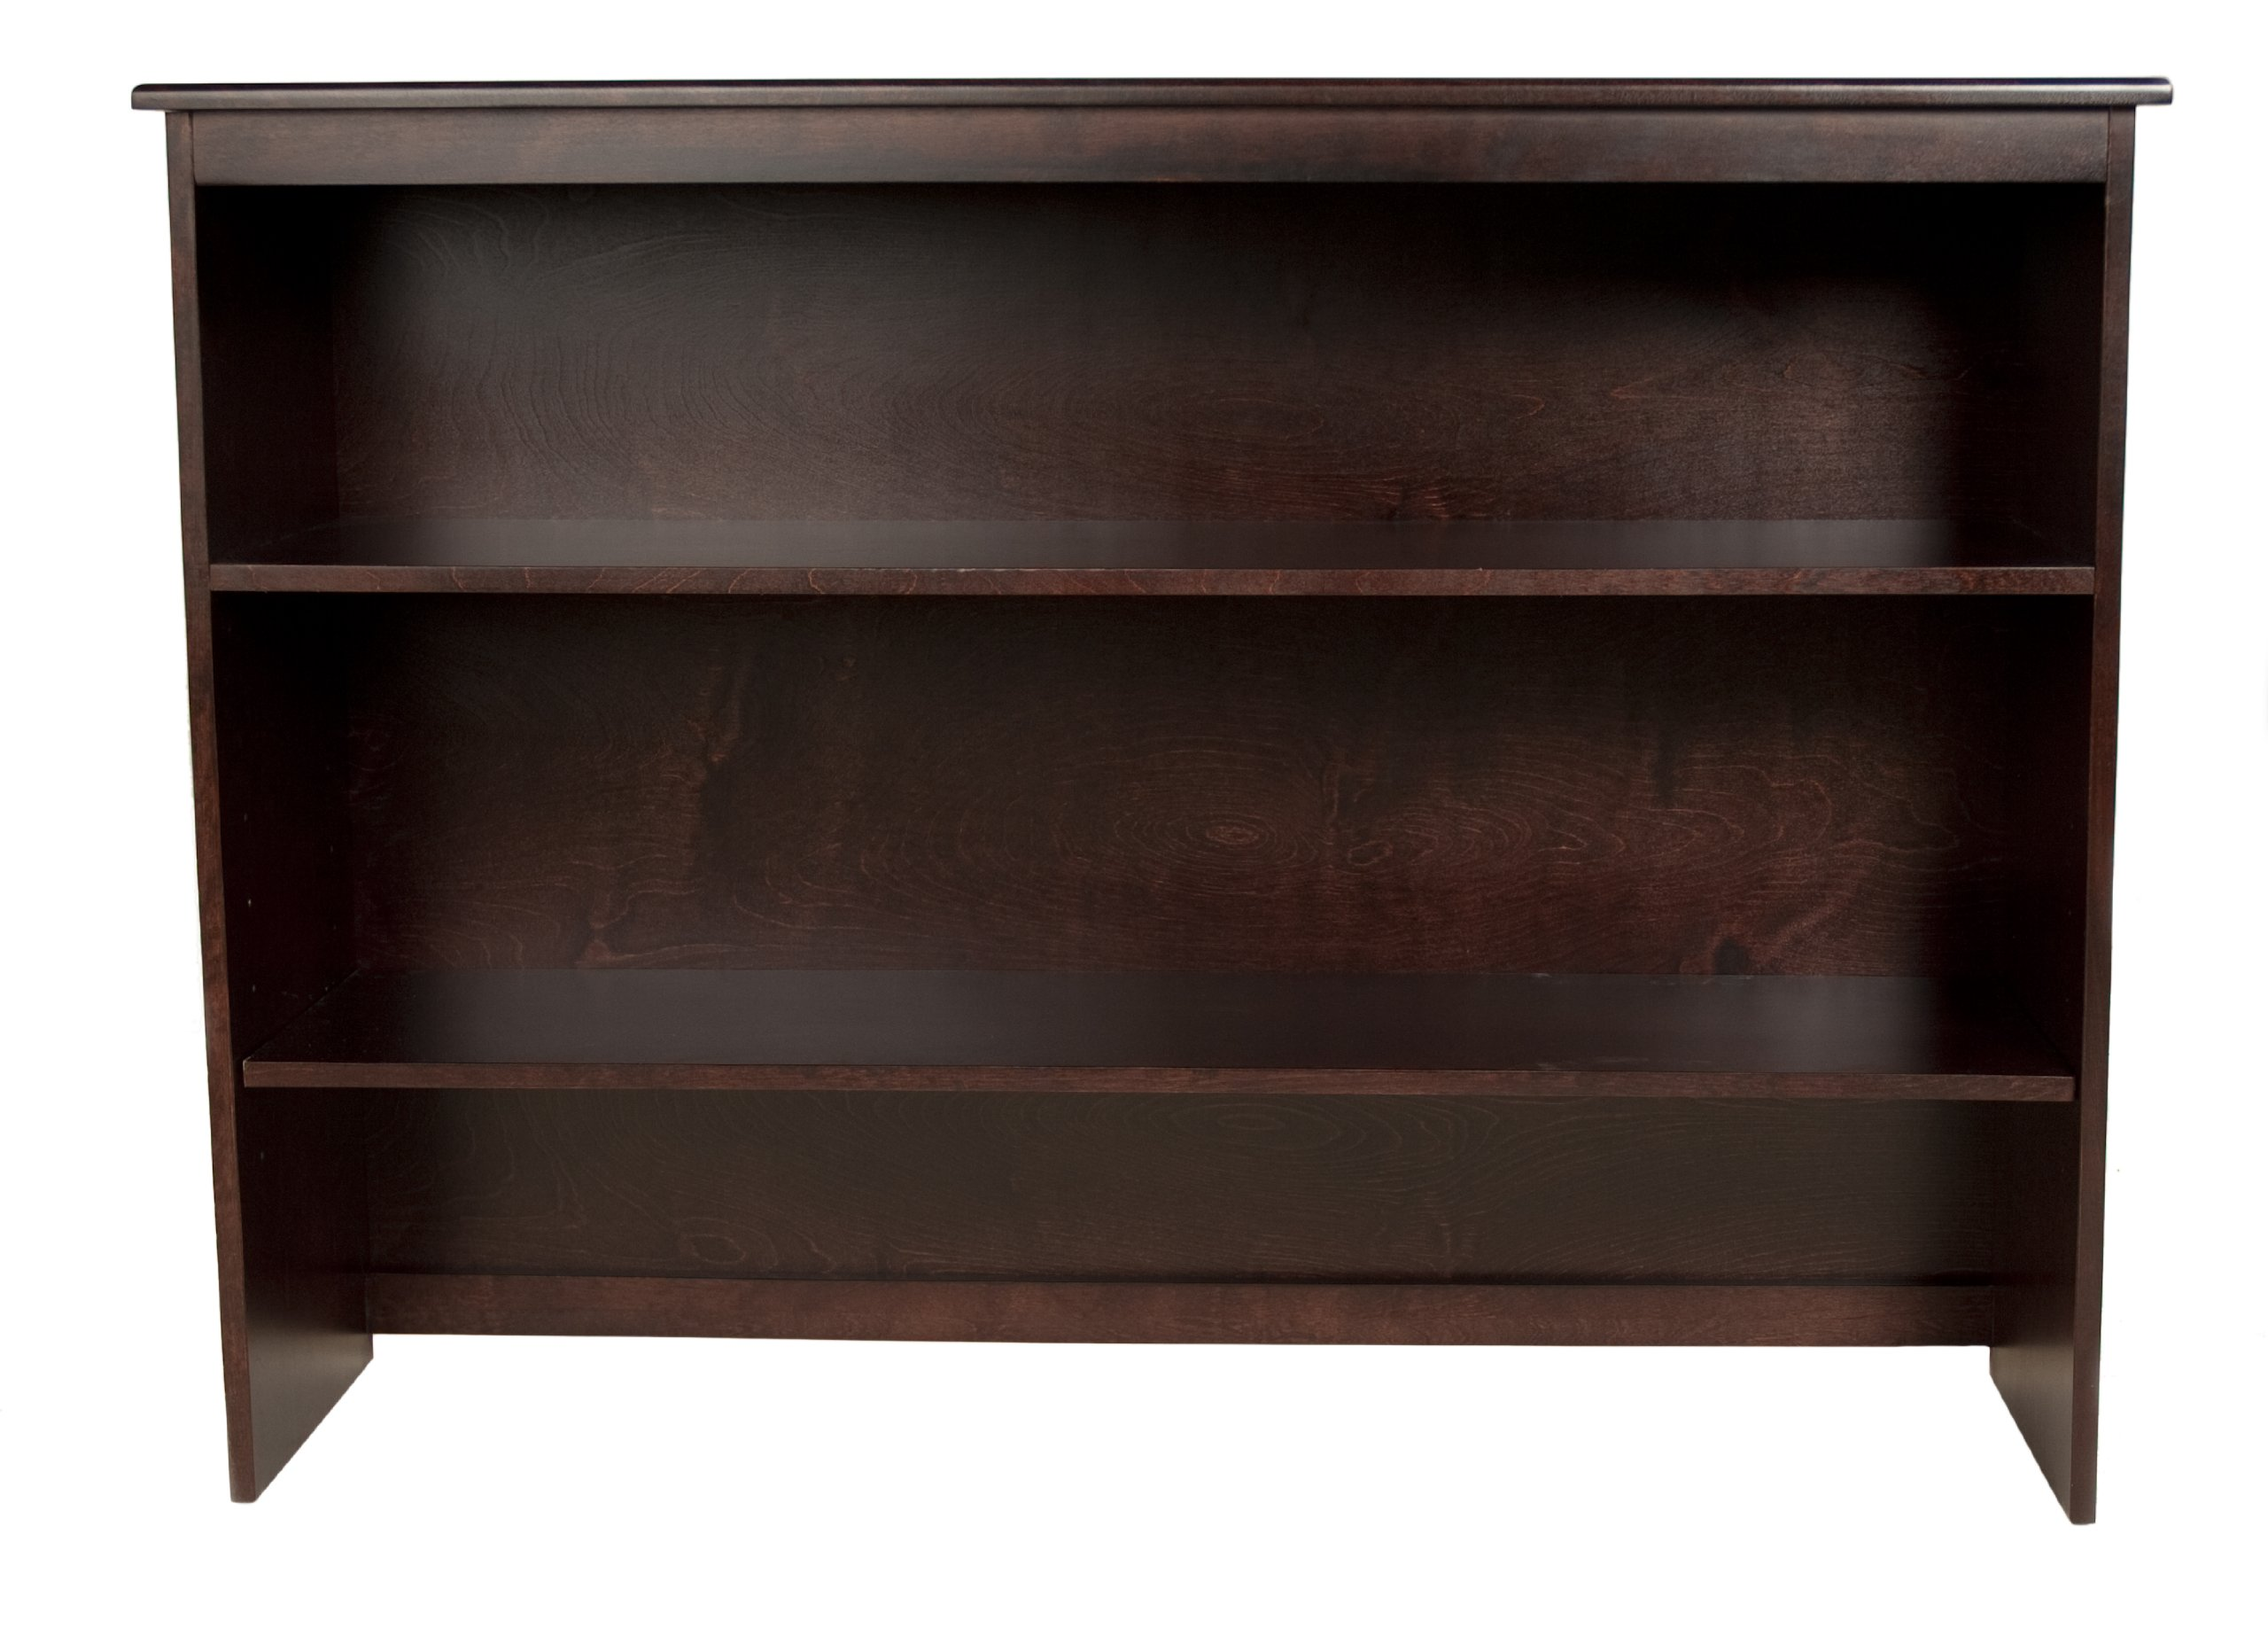 Kidz Decoeur Long Beach Hutch, Mocha